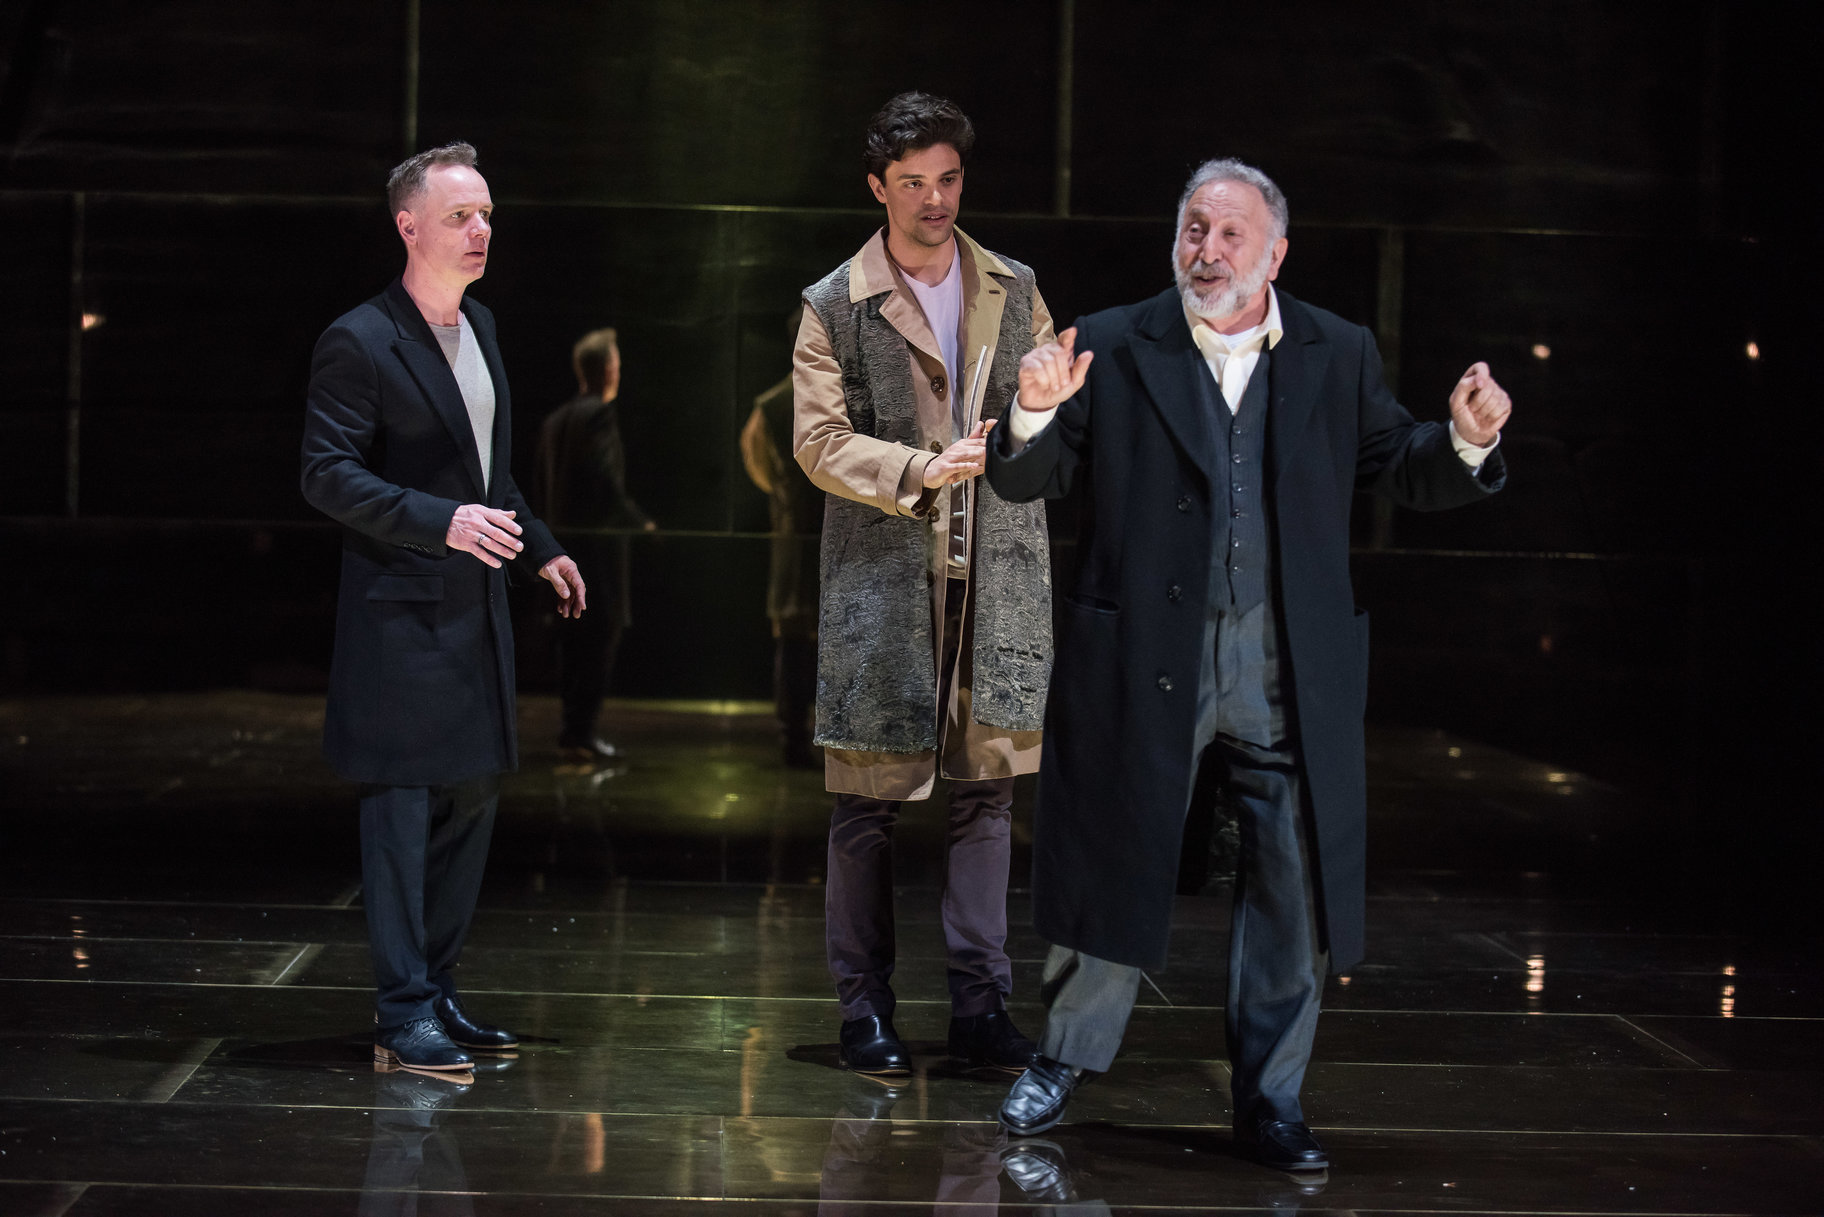 The Merchant of Venice_ 2015_ Antonio_ Bassanio and Shylock_2015_Photo by Hugo Glendinning (c) RSC _162389